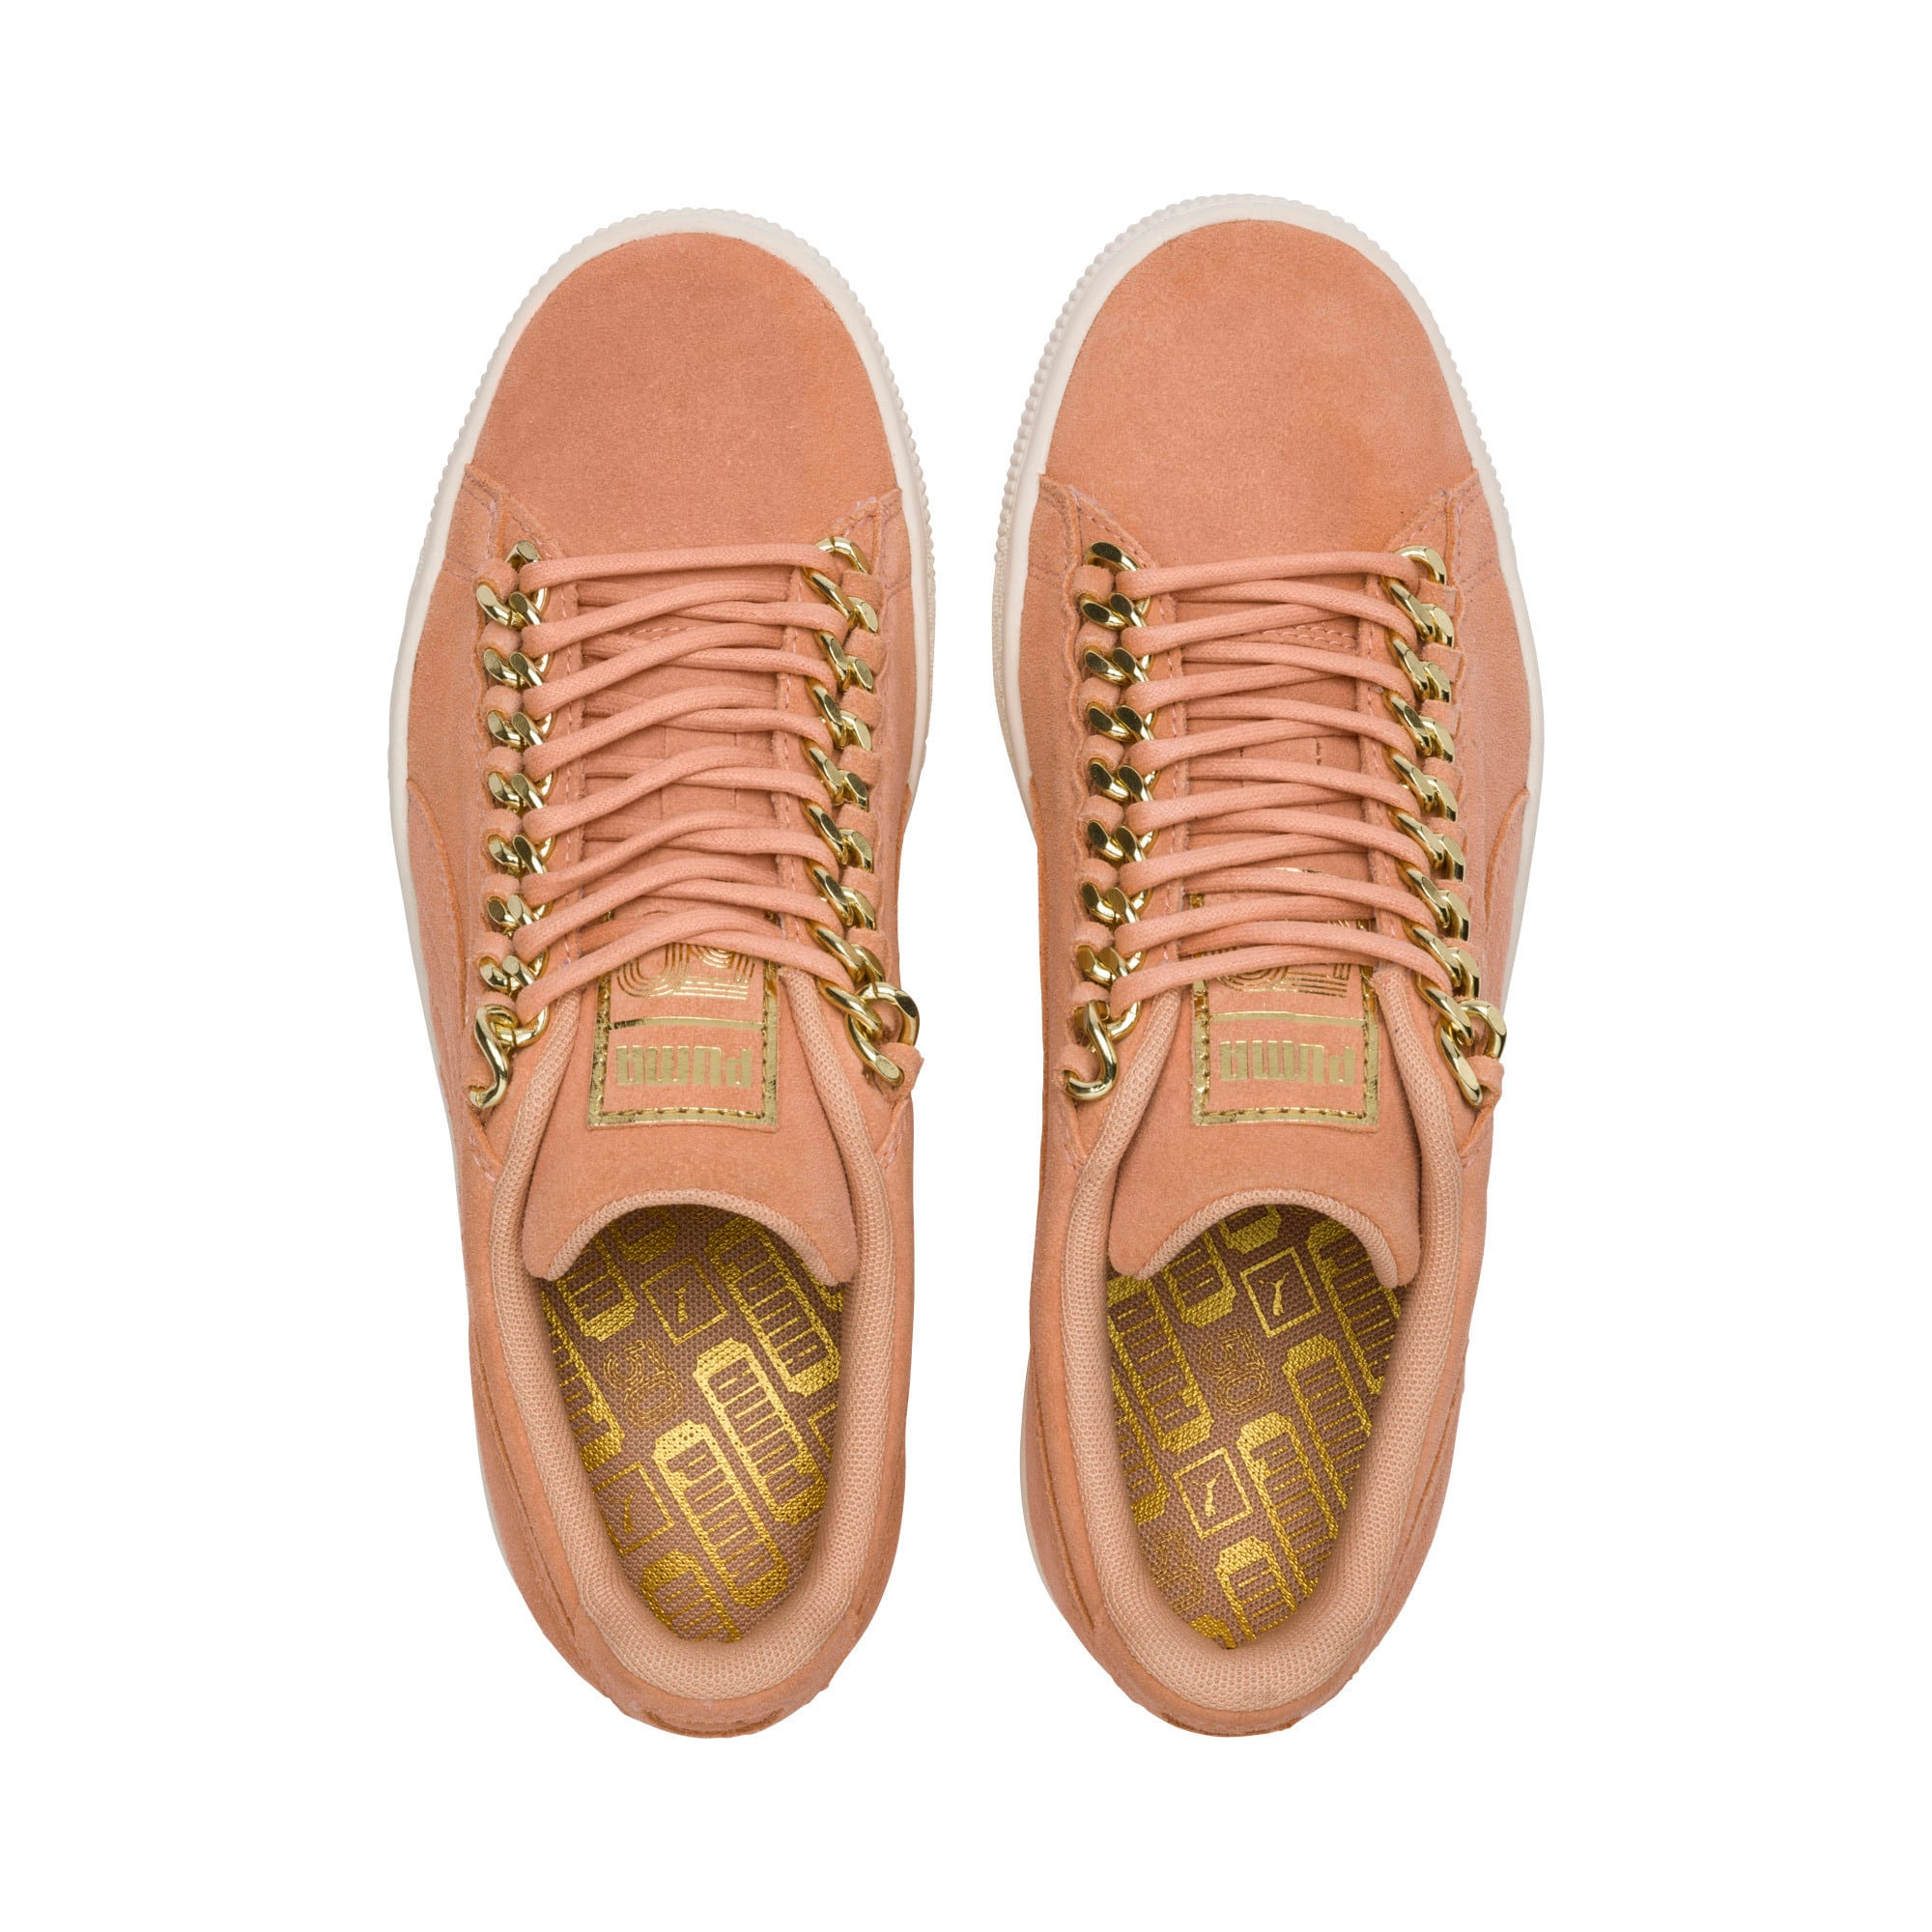 Thumbnail 6 of Suede Classic Chains Women's Trainers, Dusty Coral-Puma Team Gold, medium-IND